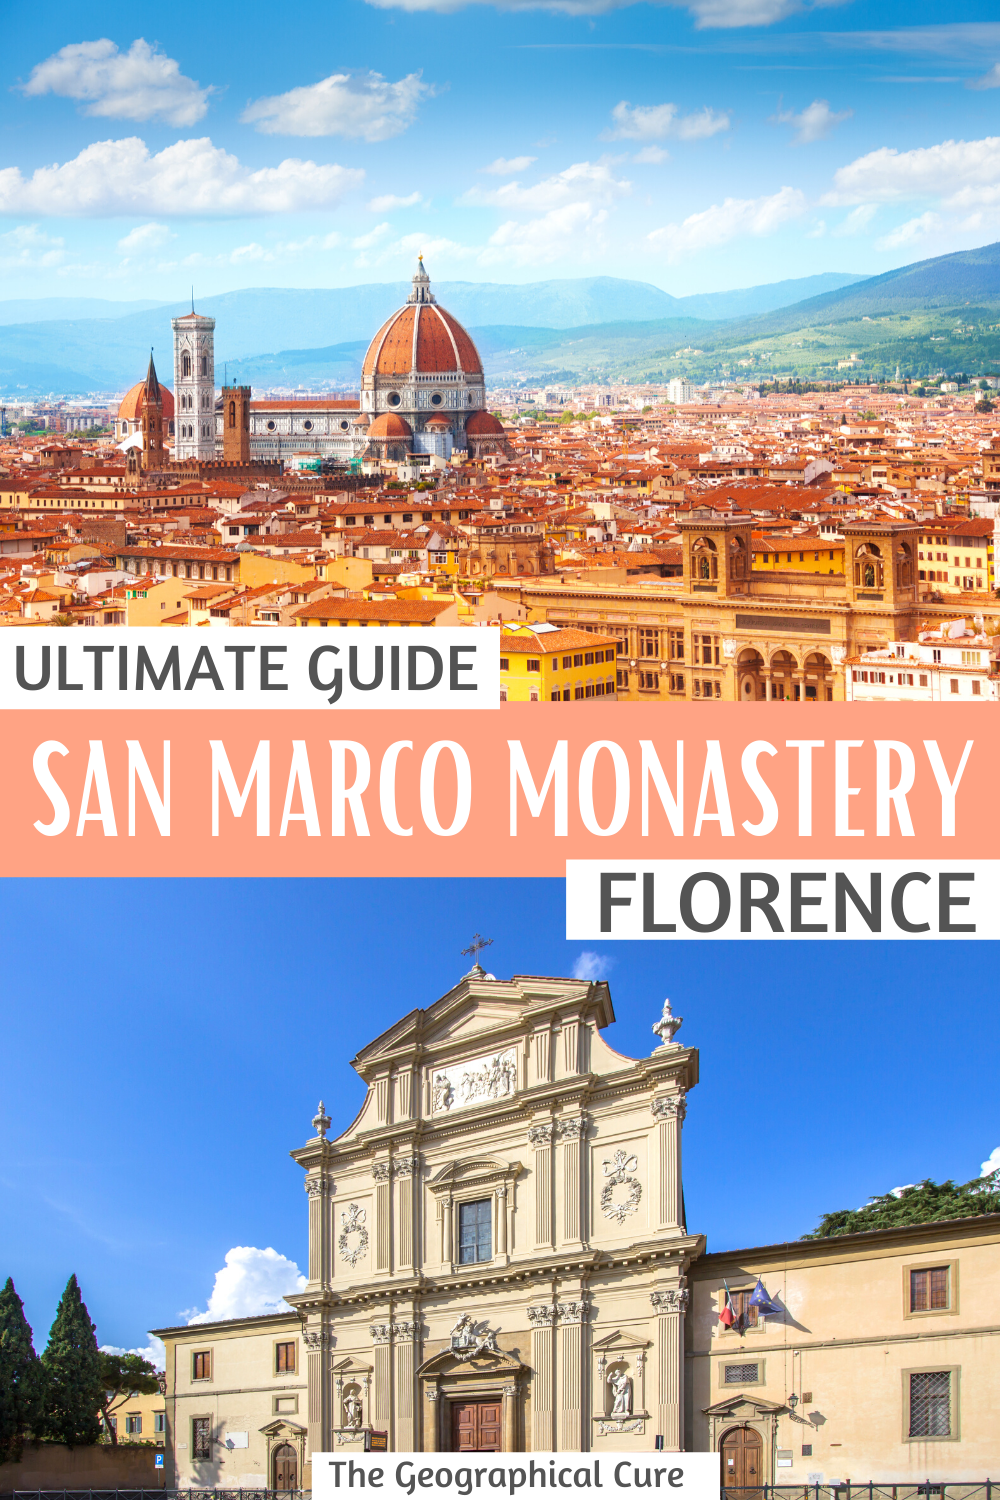 Ultimate Guide to Florence's San Marco Monastery